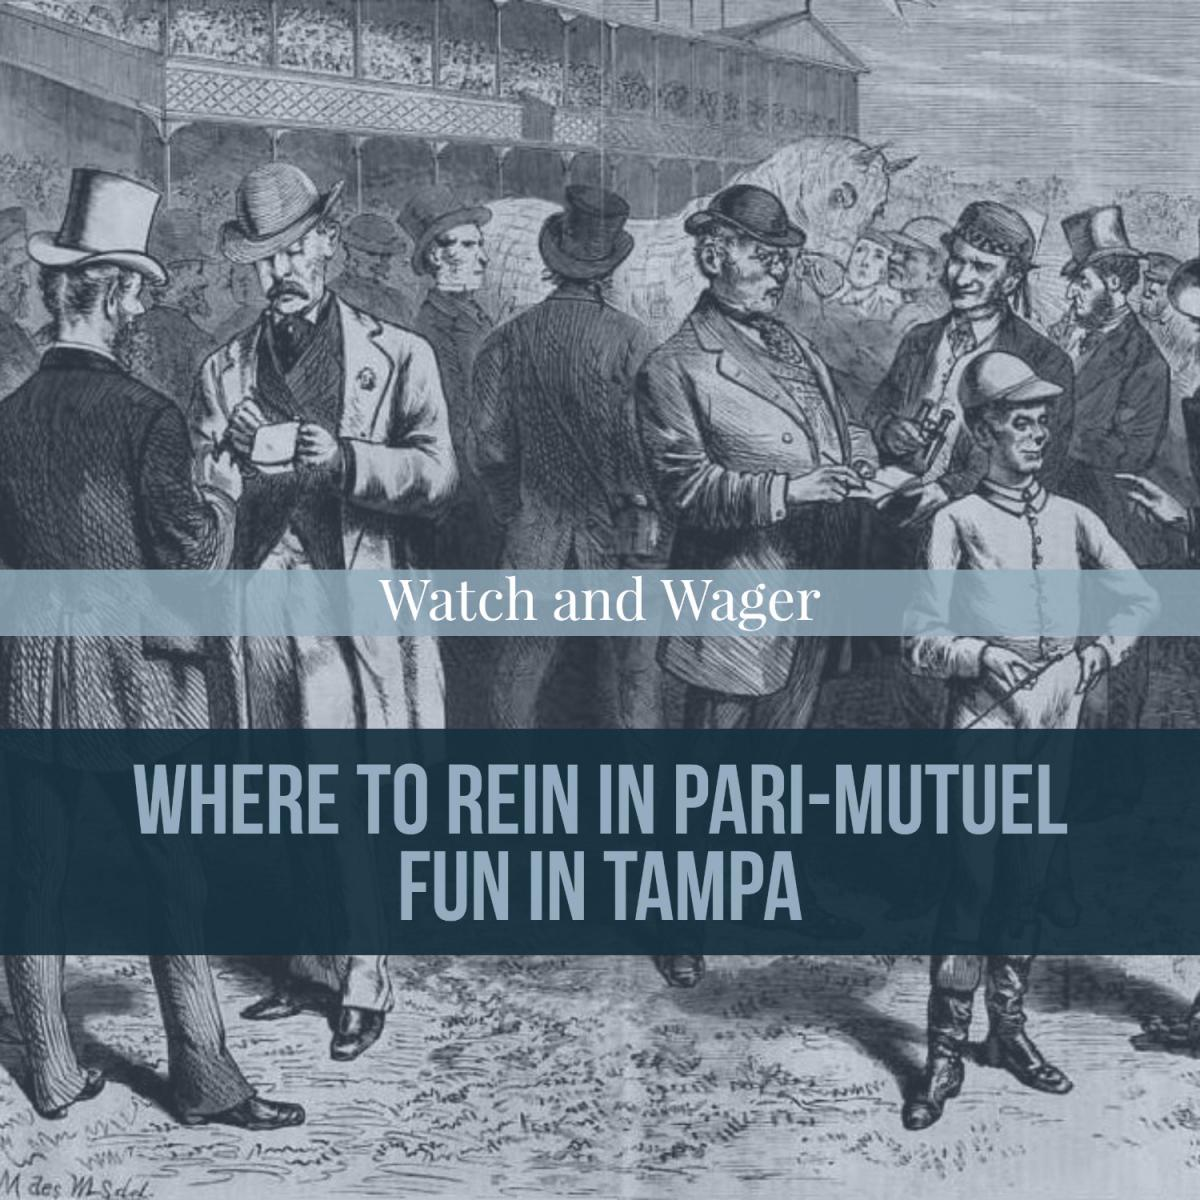 Watch and Wager; Where to Rein in Pari-Mutuel Fun in Tampa